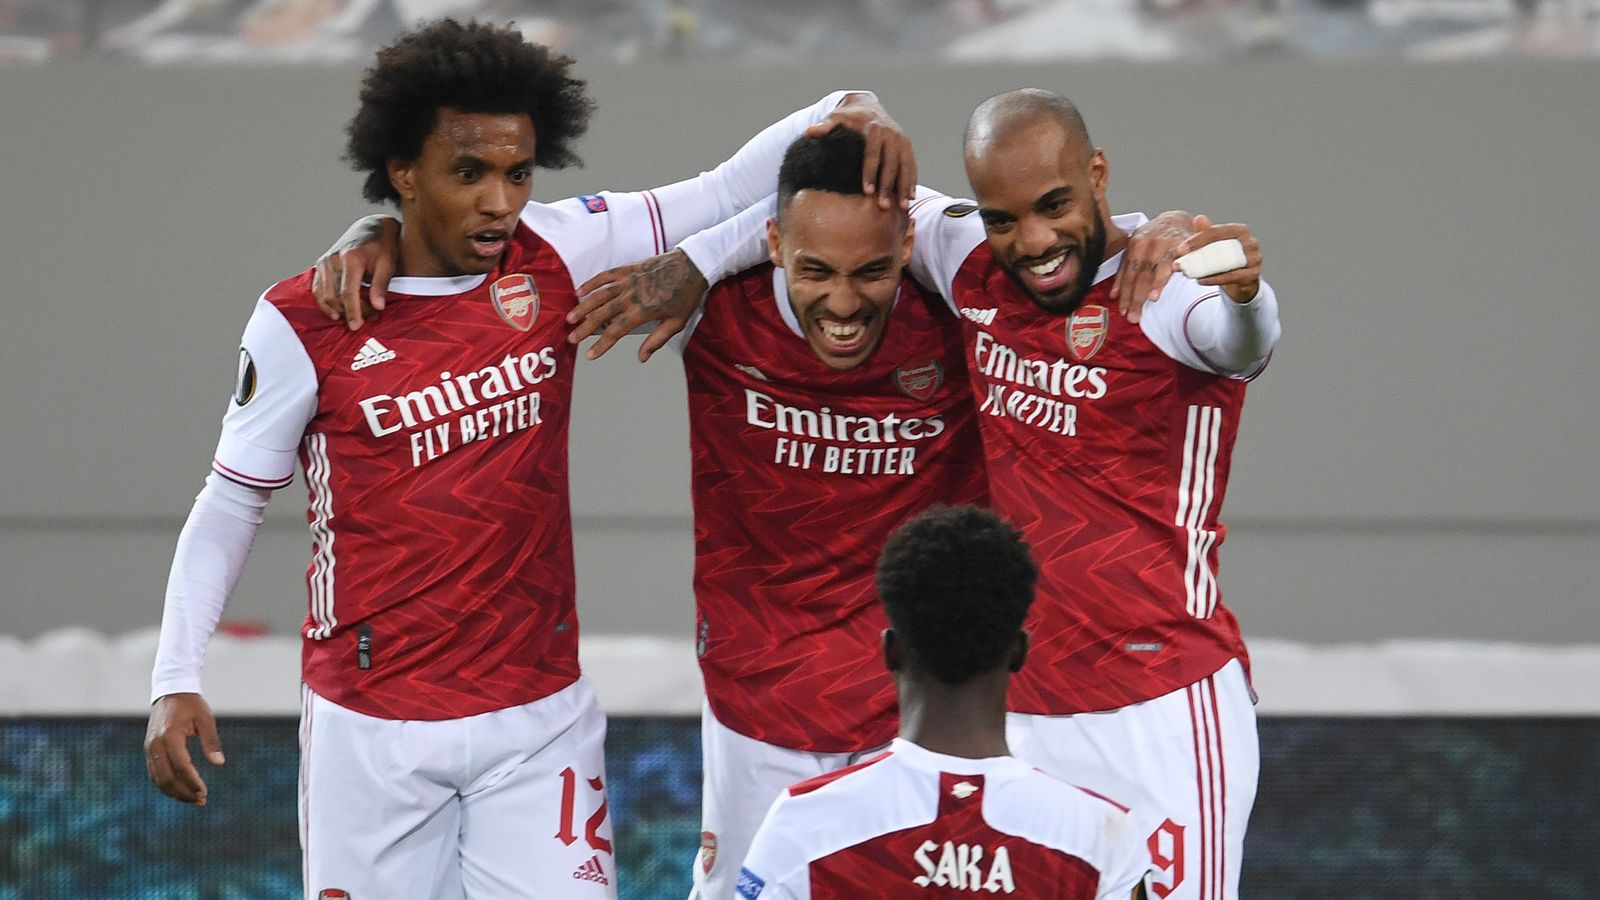 Arsenal 3-2 Benfica (4-3 agg): Pierre-Emerick Aubameyang saves Arsenal's campaign in the Europa League |  Football News